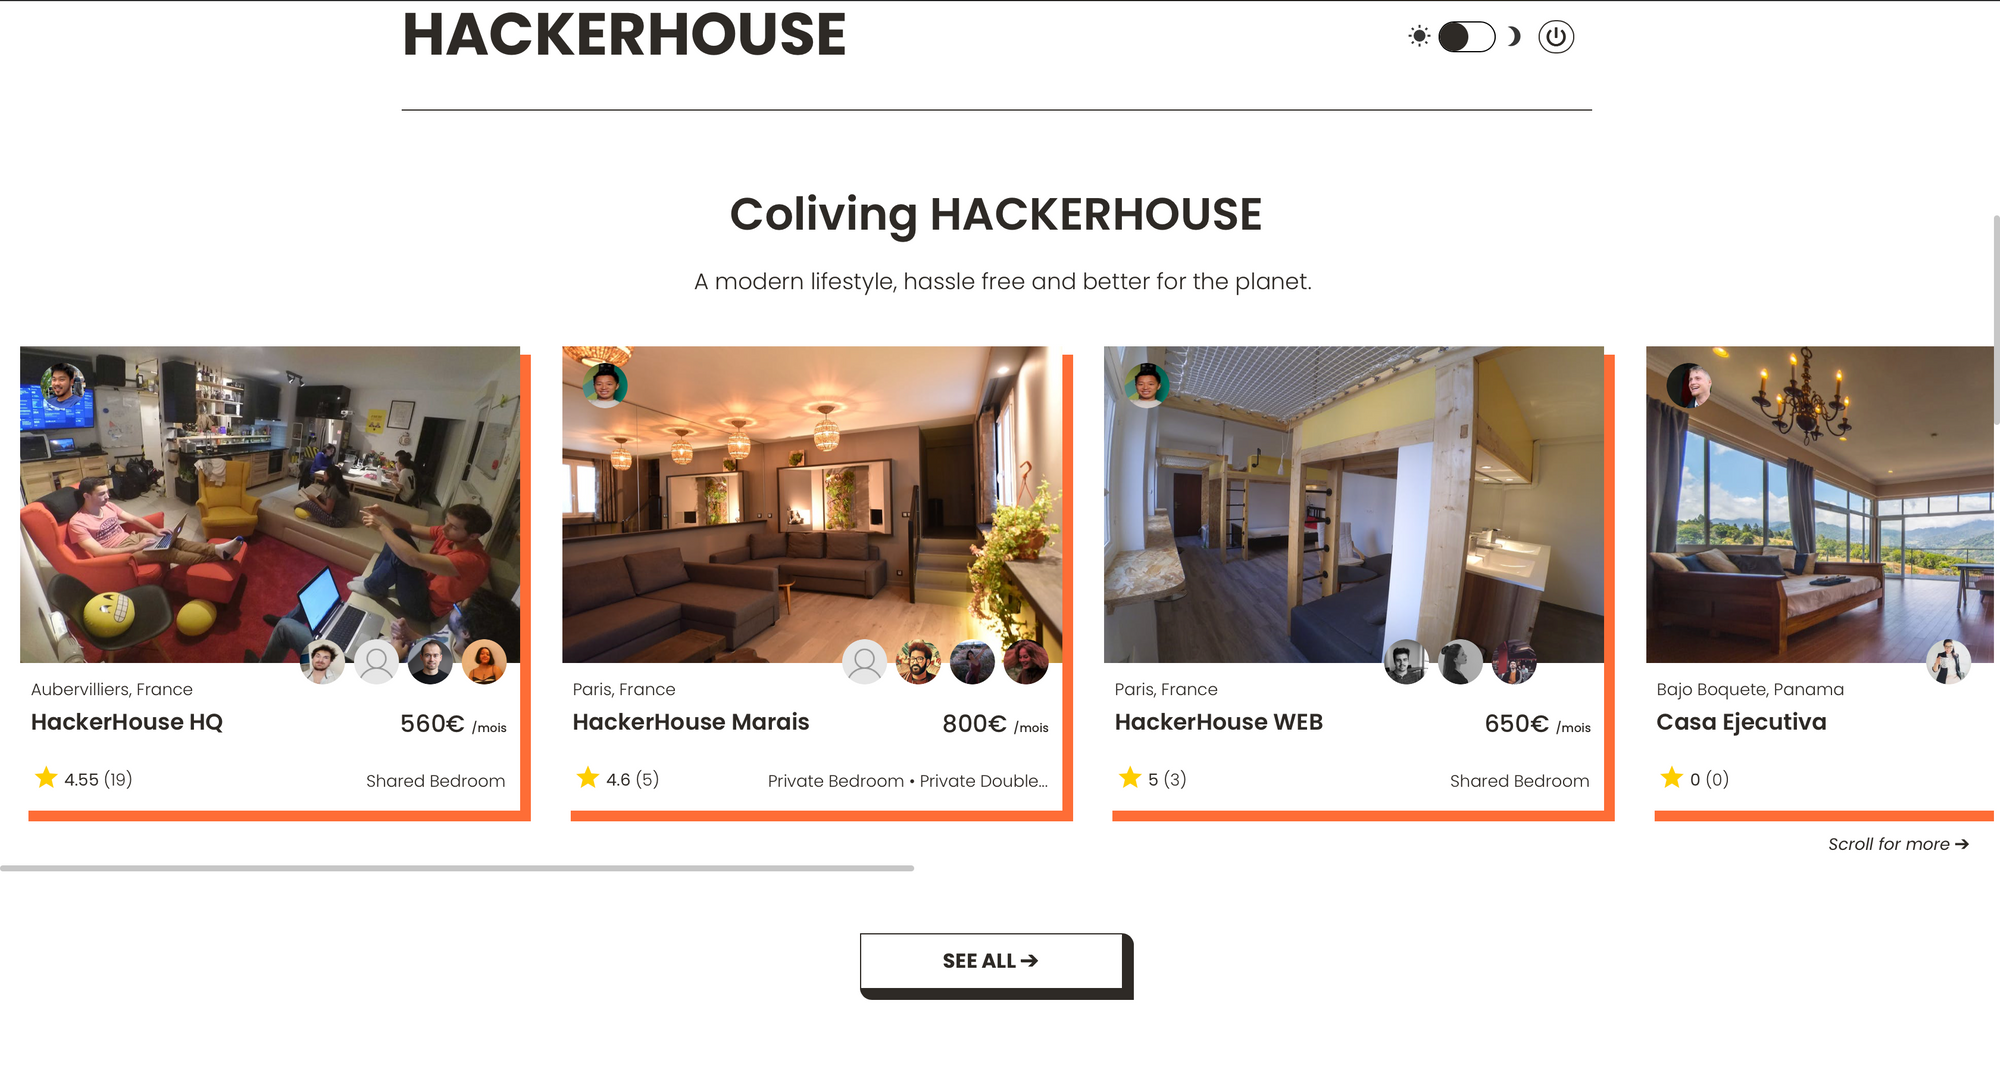 View different room listings on HackerHouse